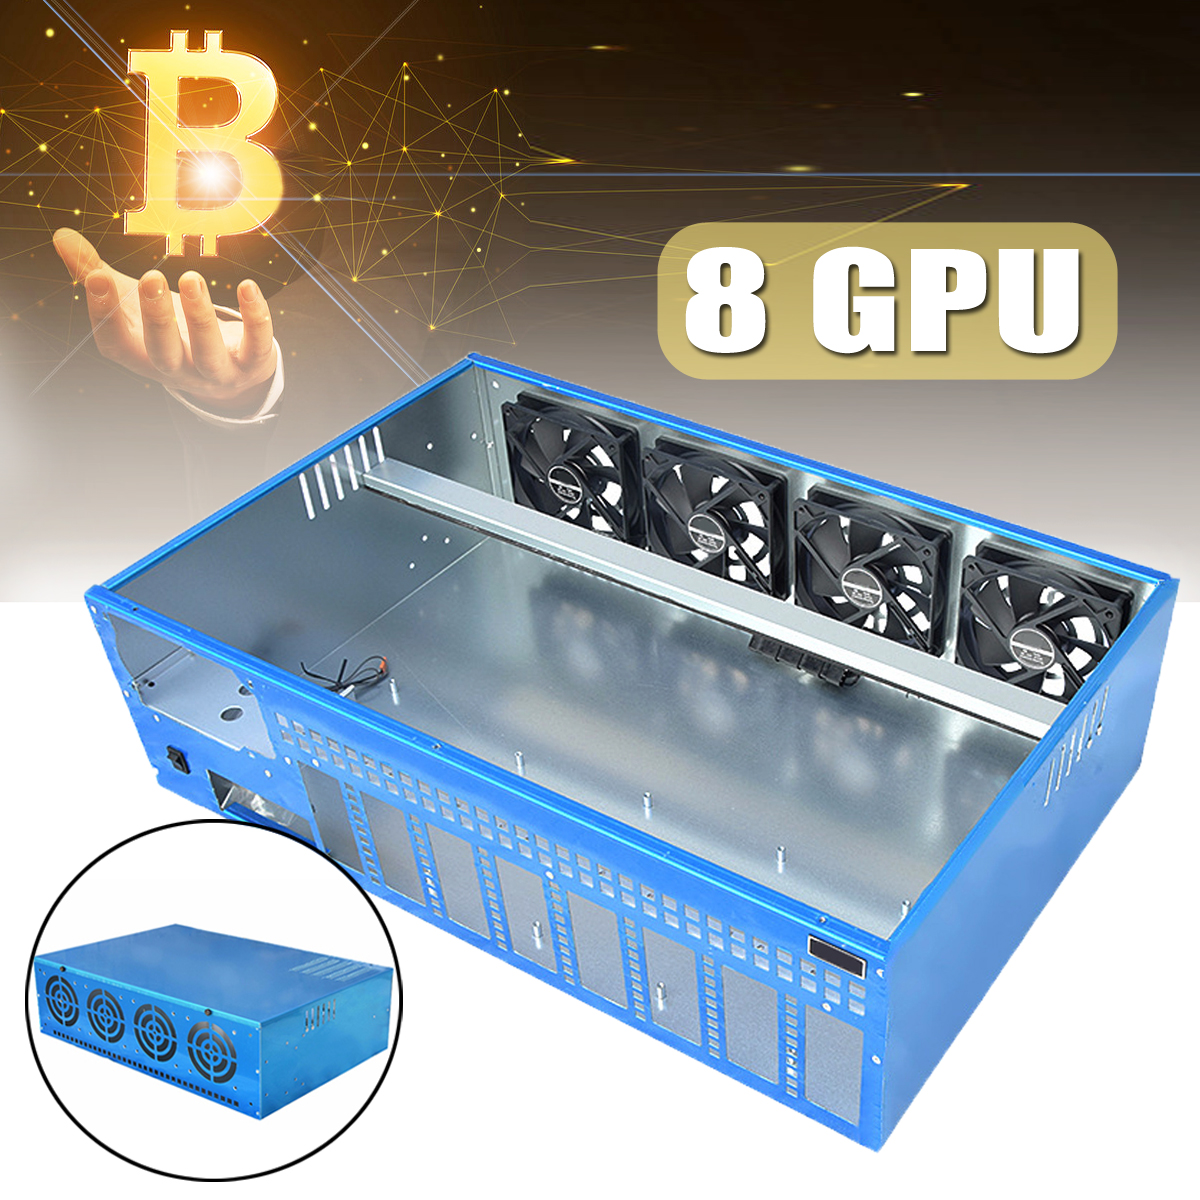 8 GPU 4 Fans Closed Mining Computer Cold rolled steel Case Frame Server Chassis For Onda B250 BTC D8P-D3 Motherboard купить в Москве 2019